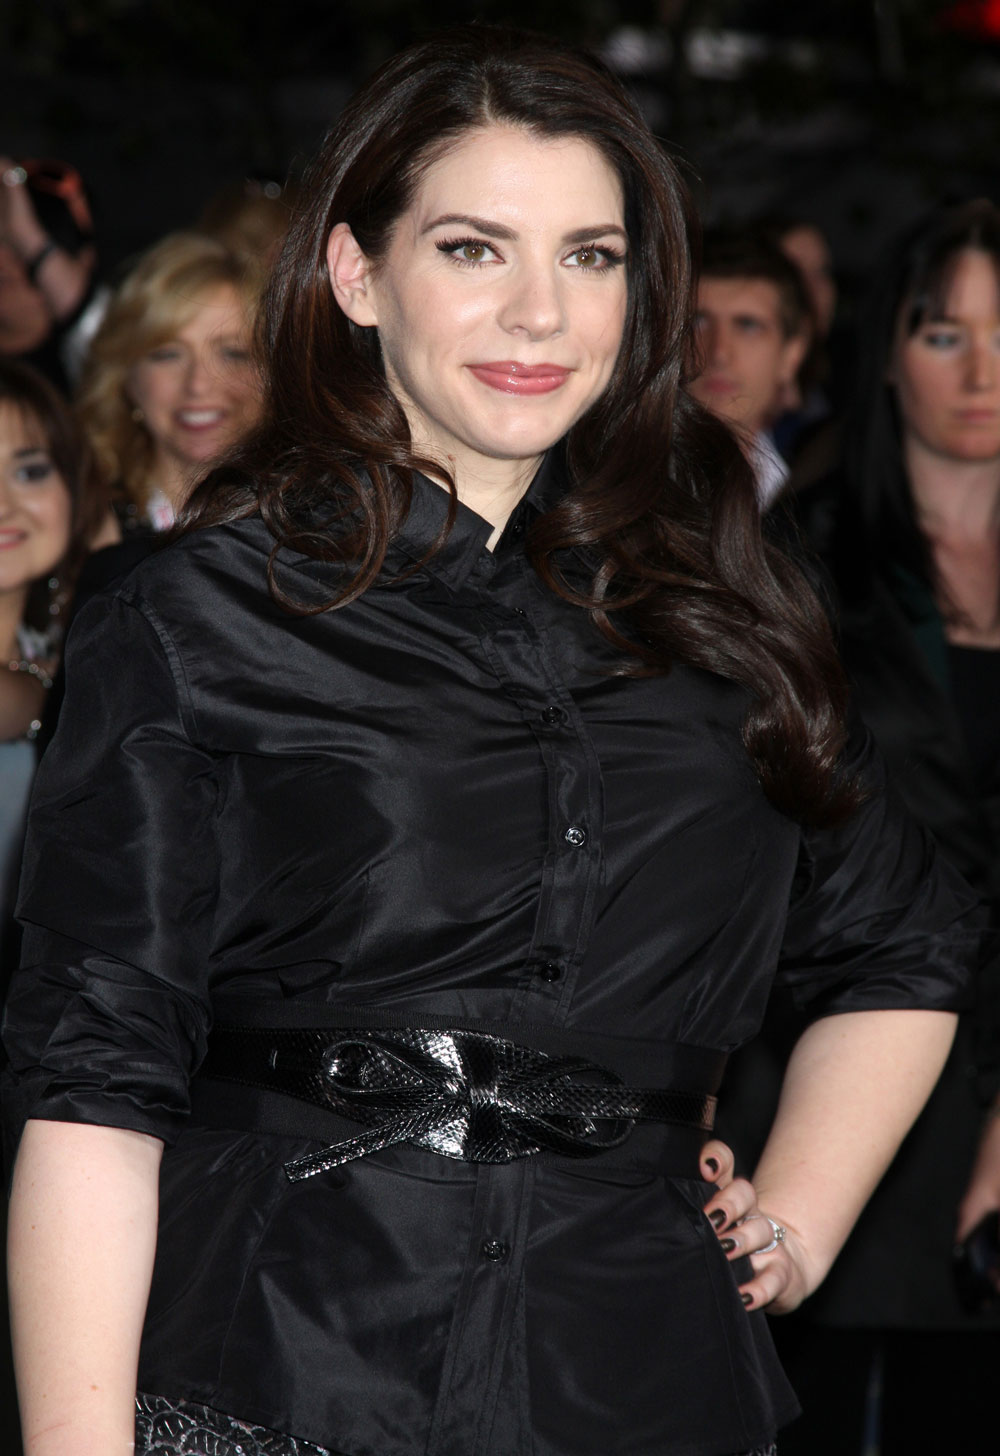 stephenie meyer writing style Writing style edit novelist orson scott card said, stephenie meyer writes with luminous clarity, never standing between the reader and the dream they share she's the real thing ~ stephenie meyer - wikipedia.